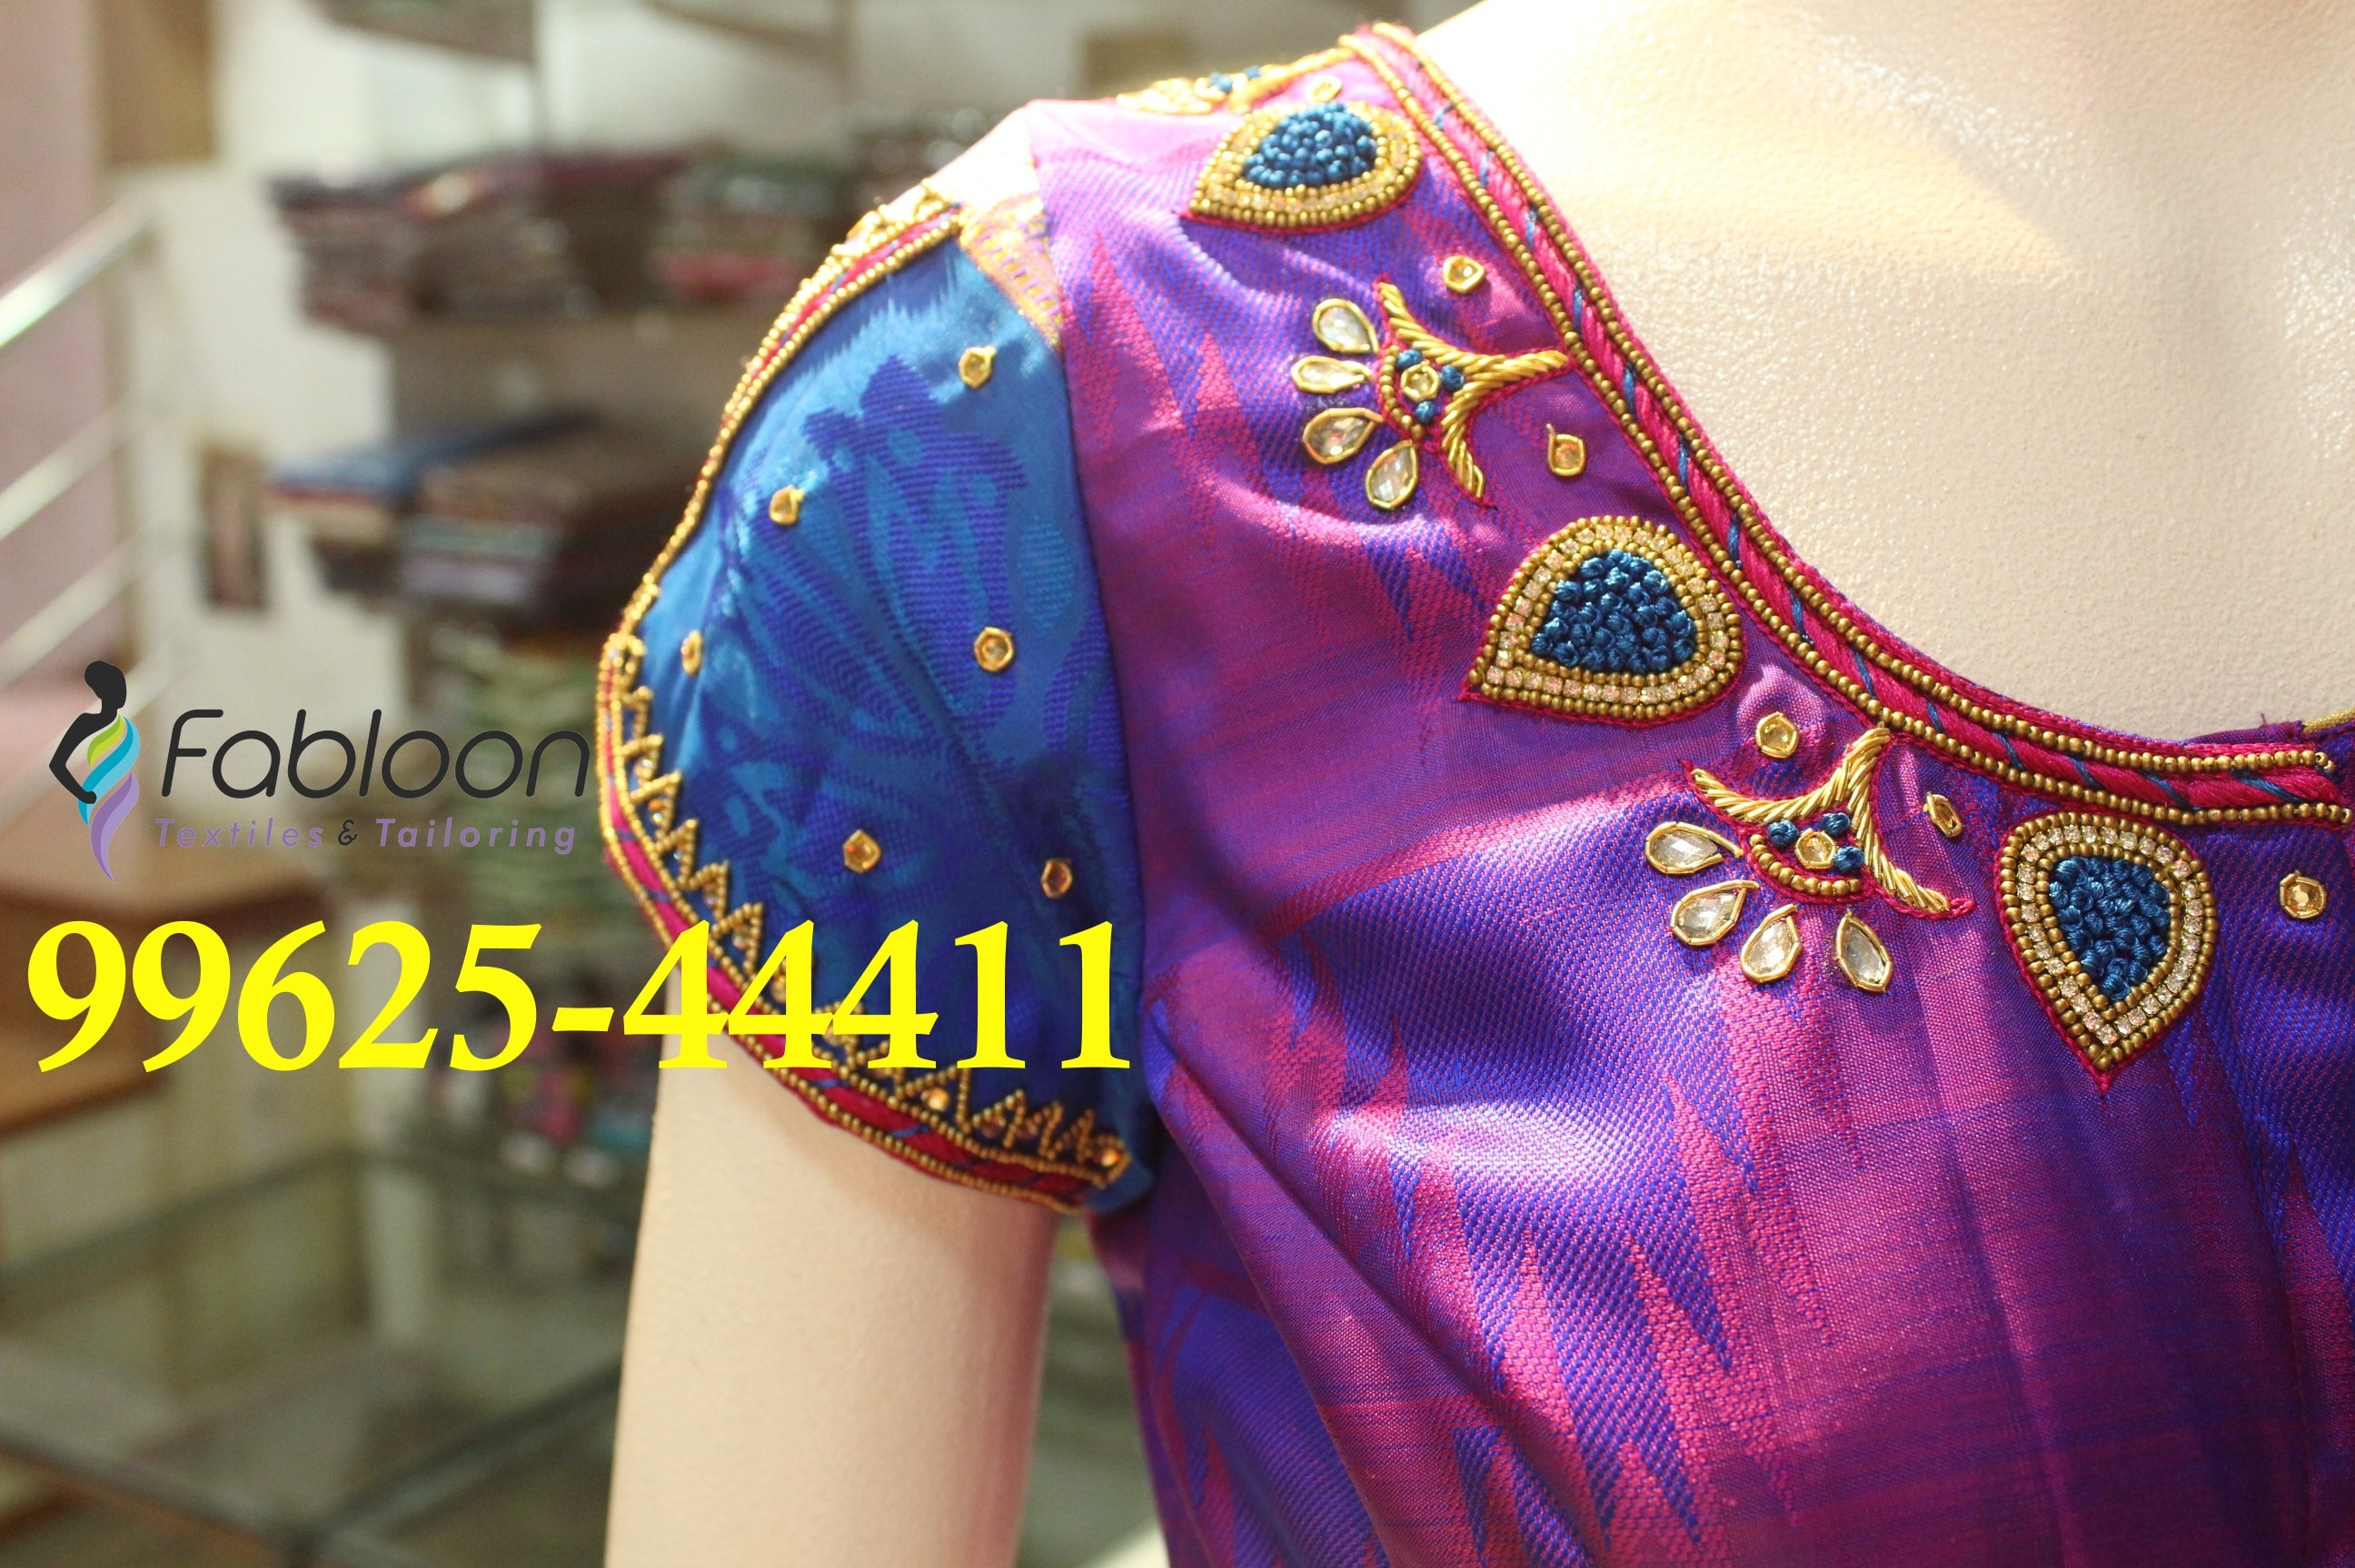 Embroidery Work Designs At Fabloon Tailors In Vadapalani, Mob: +91 9962544411, 044 48644411.  Beautiful Dresses Boutique Dresses Cute Dresses Dress Shops Check all updates for more collections.